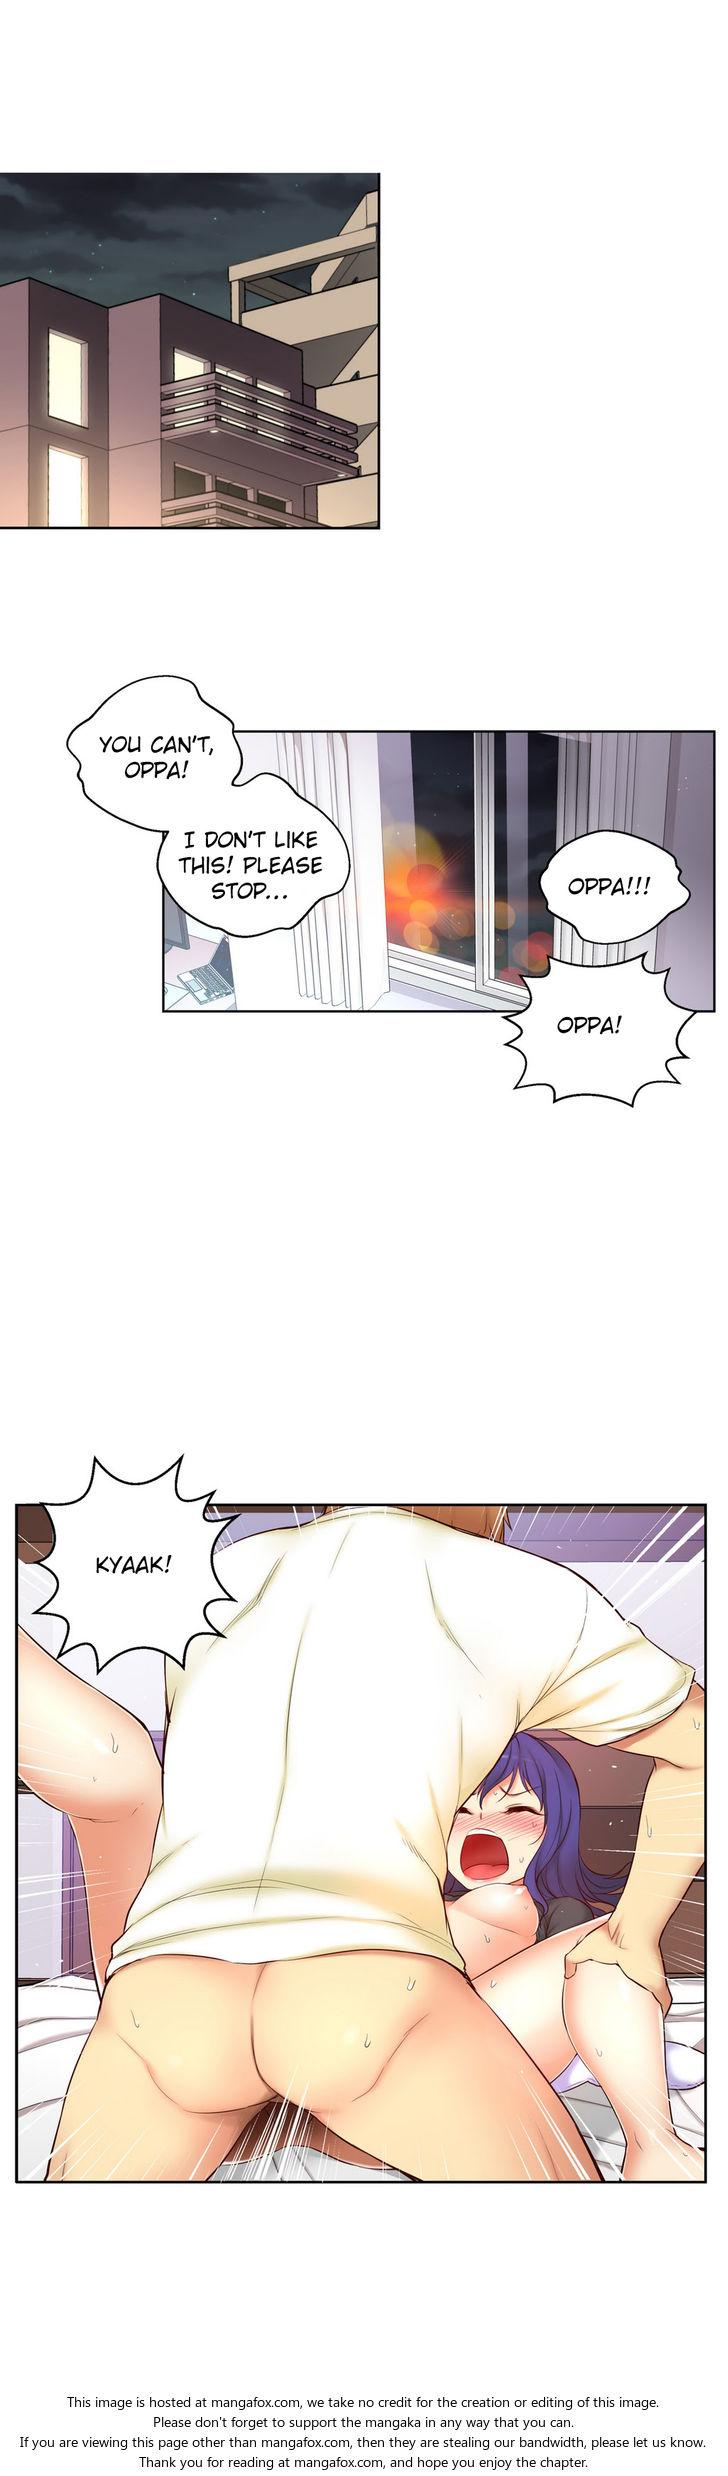 [Donggul Gom] She is Young (English) Part 1/2 1019